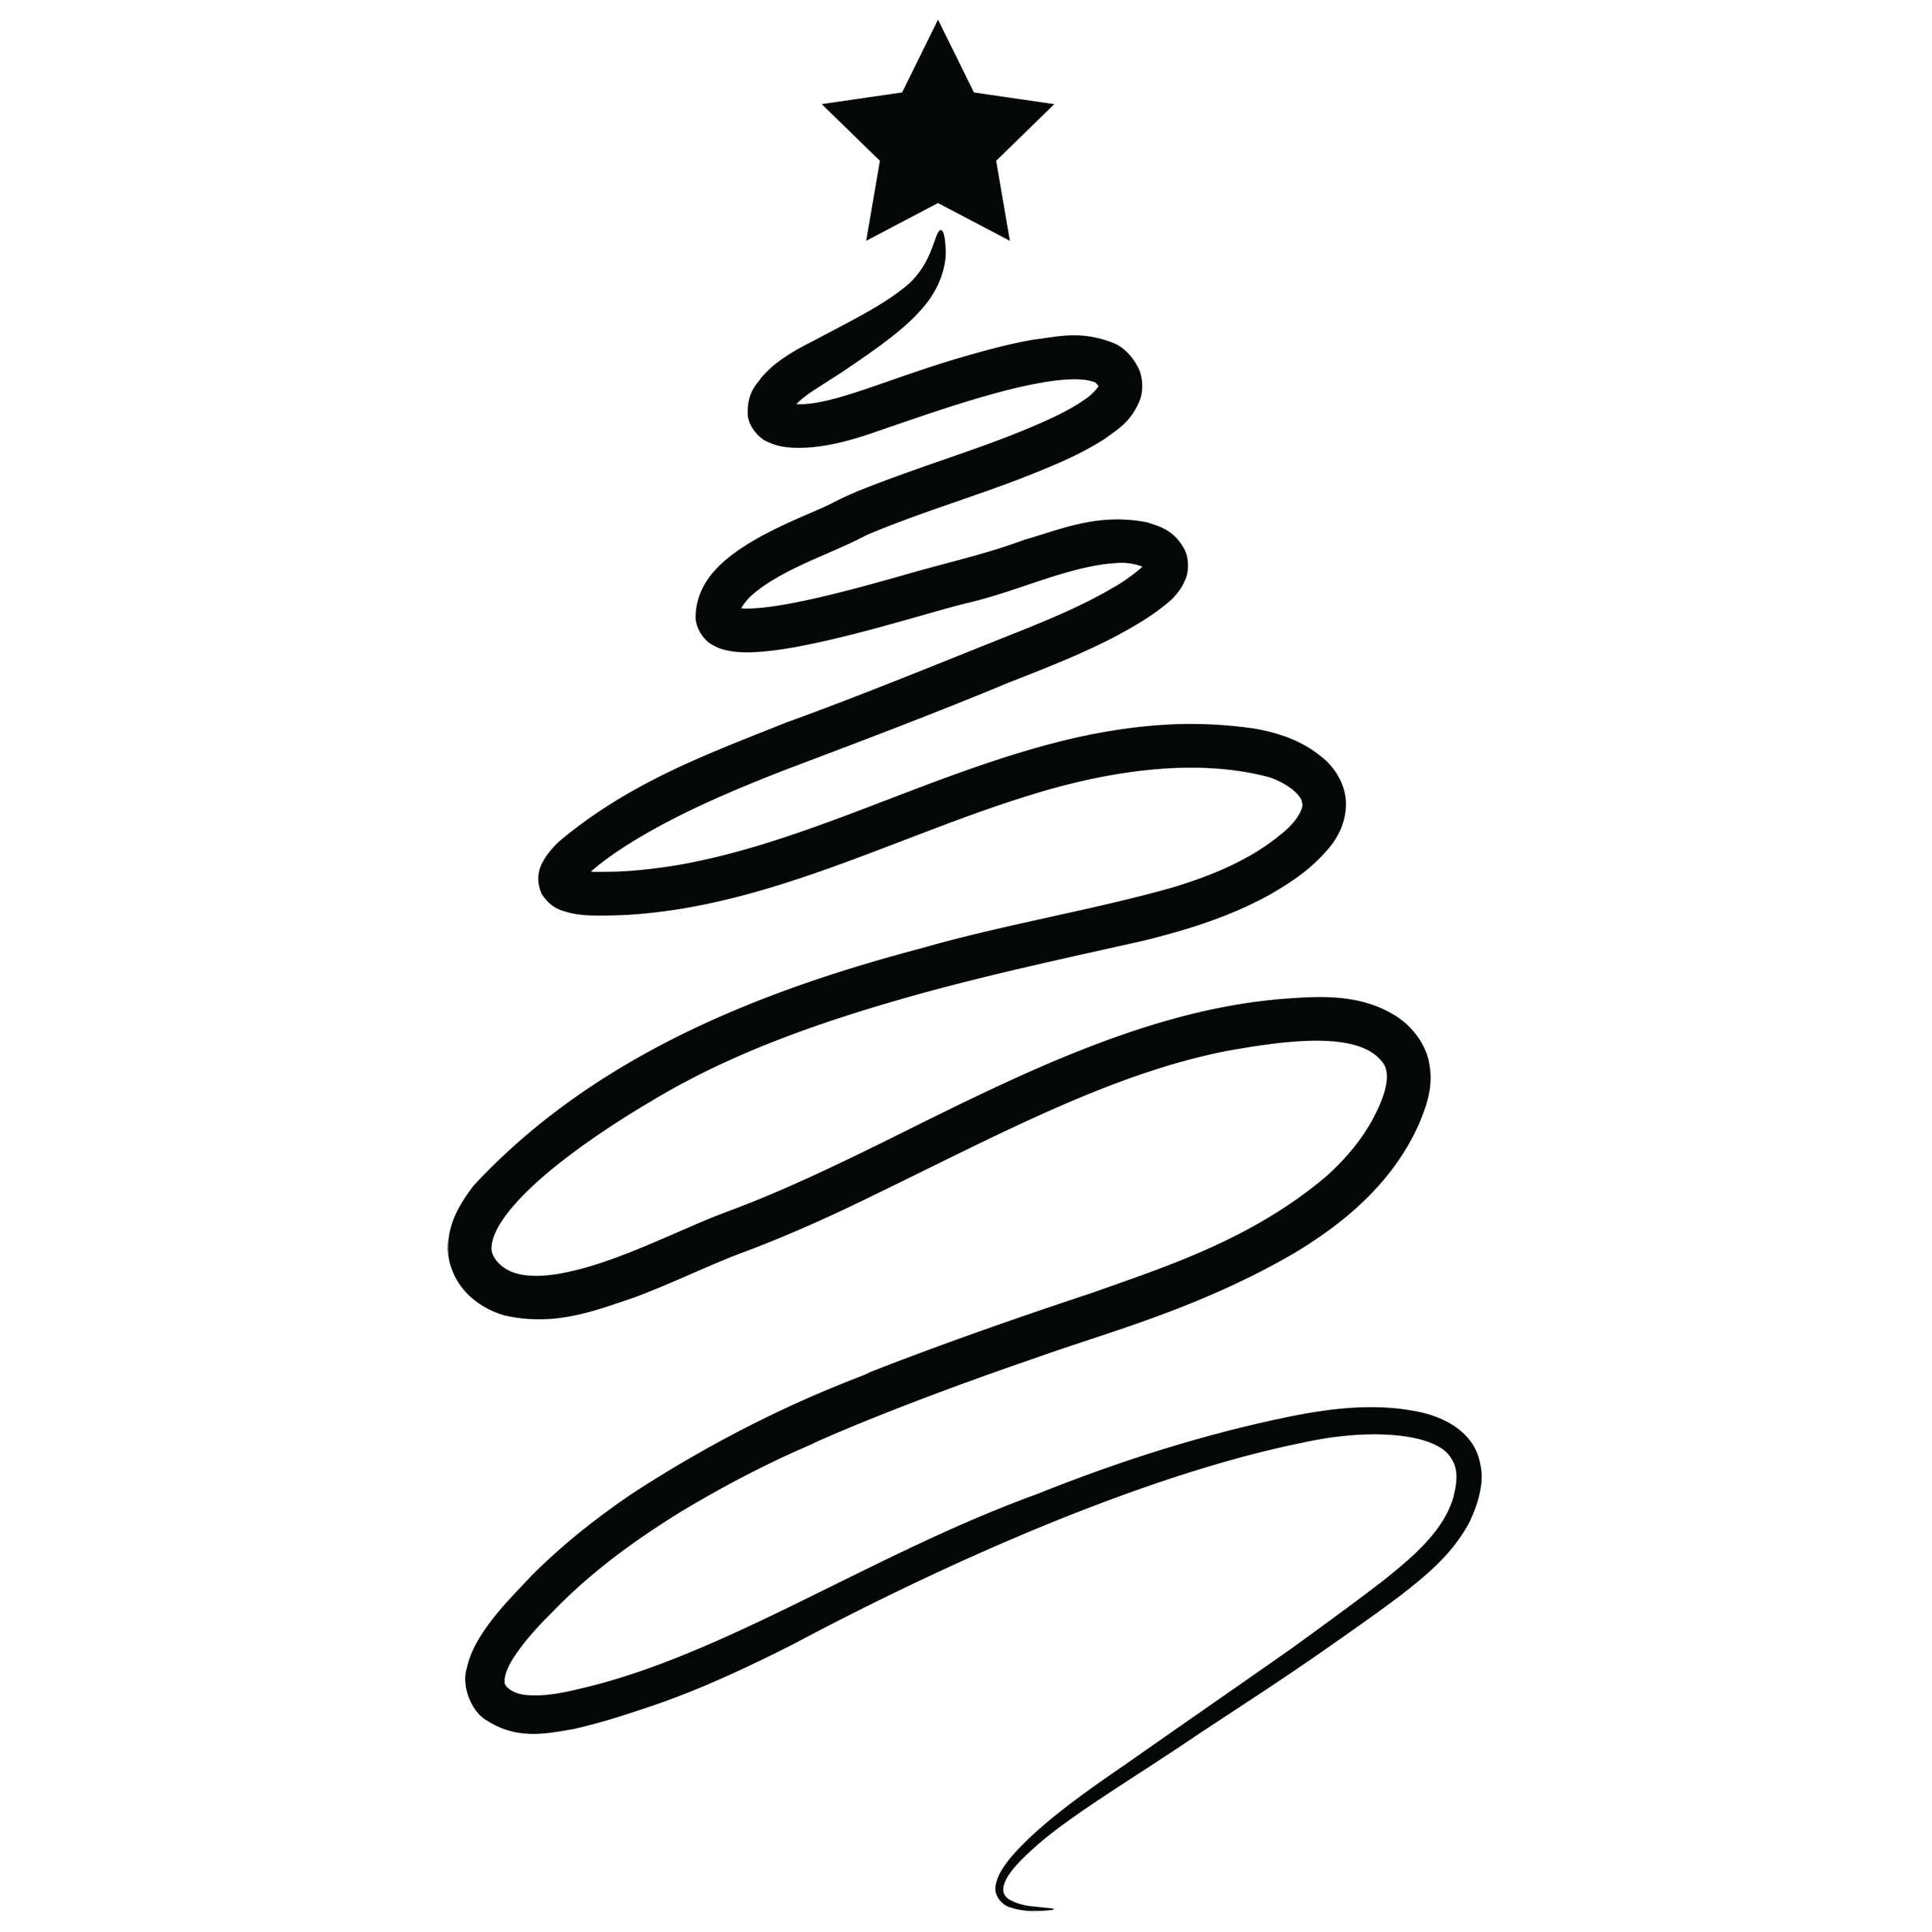 Christmas tree silhouette png. Clip art at getdrawings